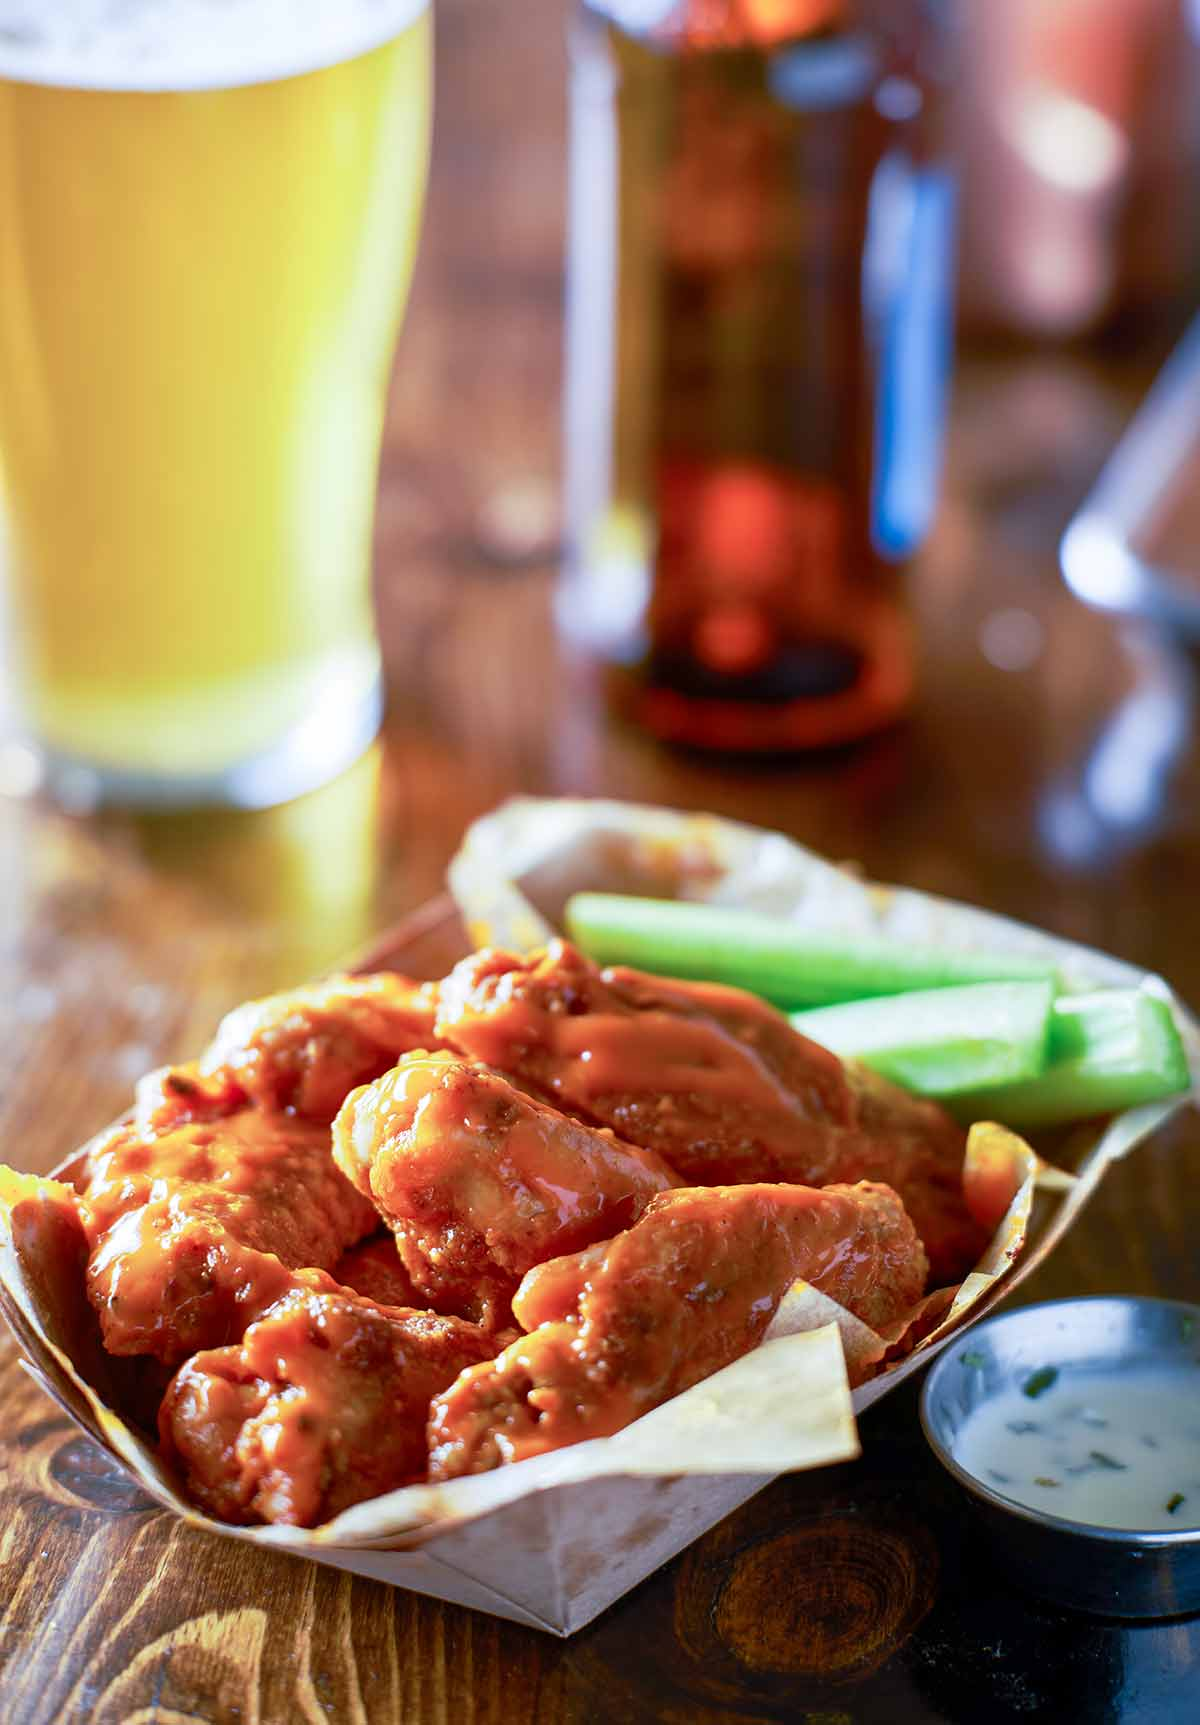 A paper basket filled with classic buffalo wings and celery sticks with a metal cup of dipping sauce beside it.